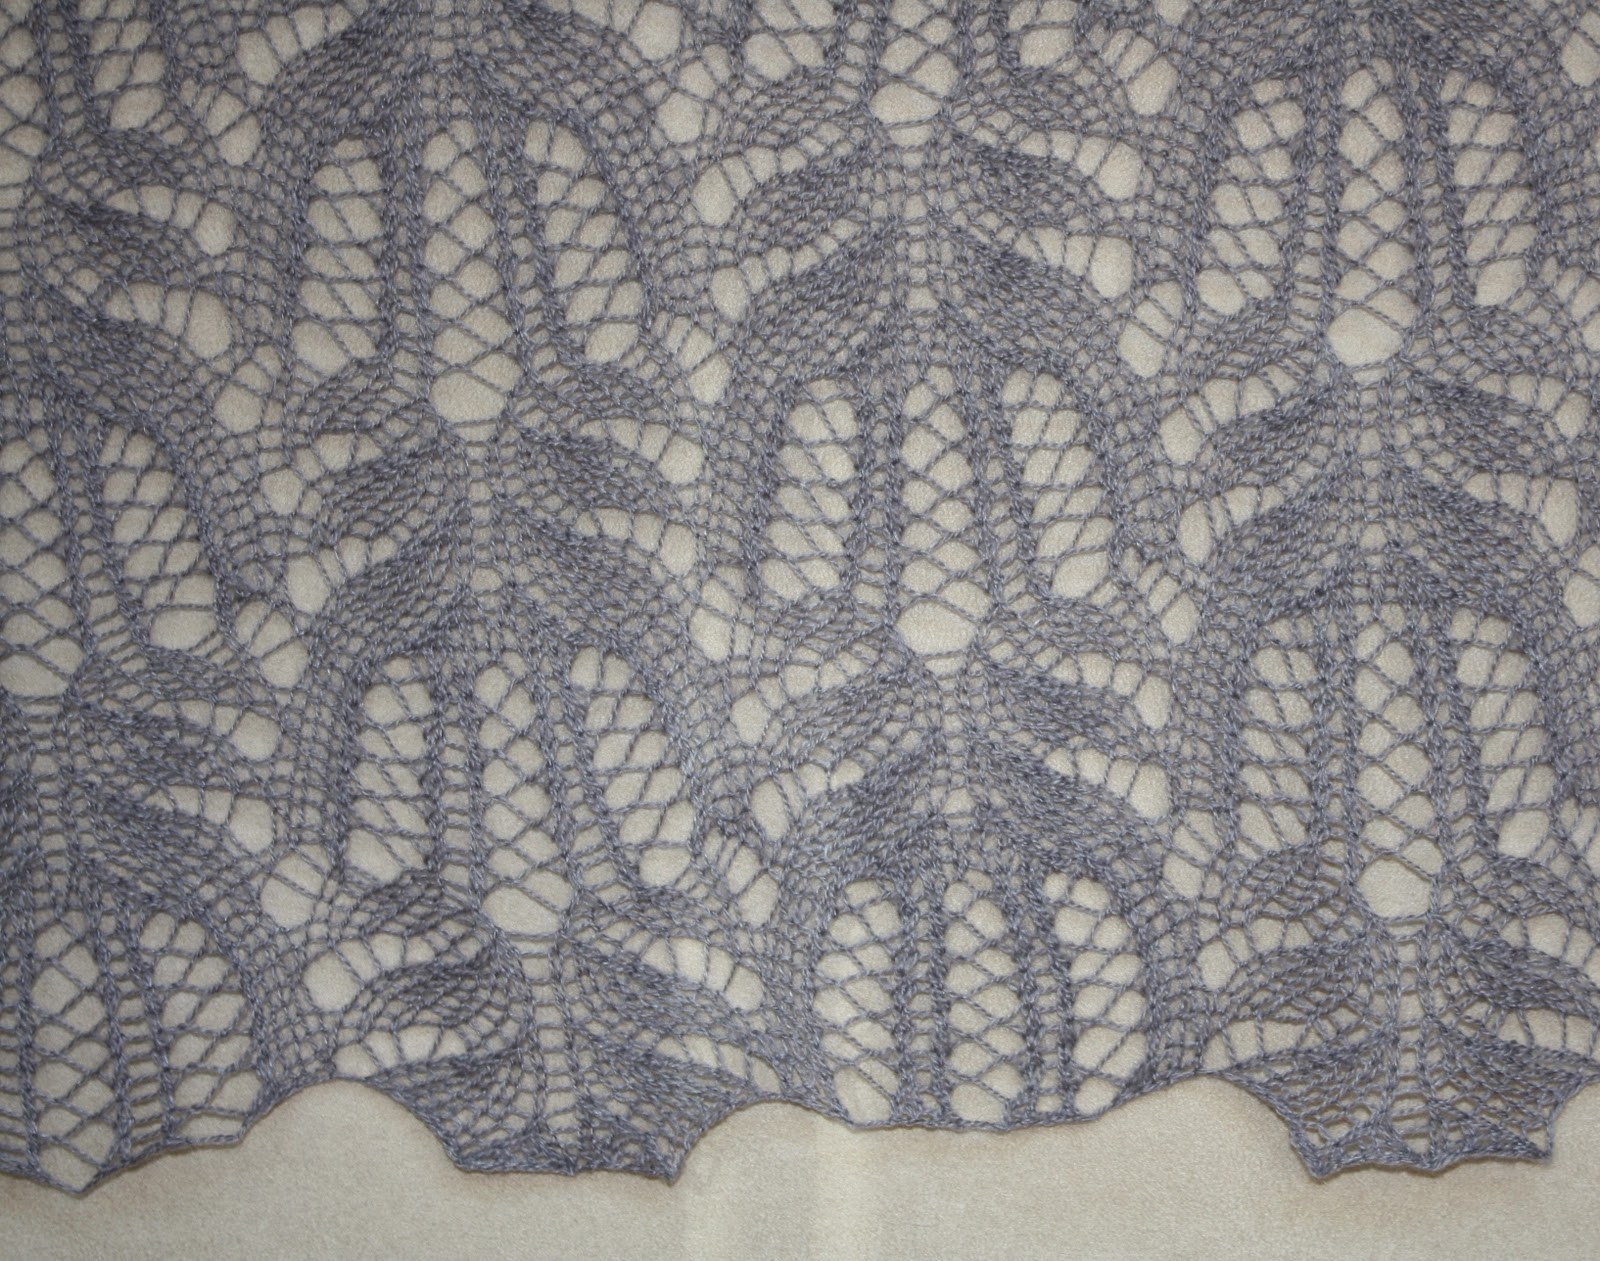 All knitted lace frost flowers lace pattern frost flowers lace pattern bankloansurffo Images